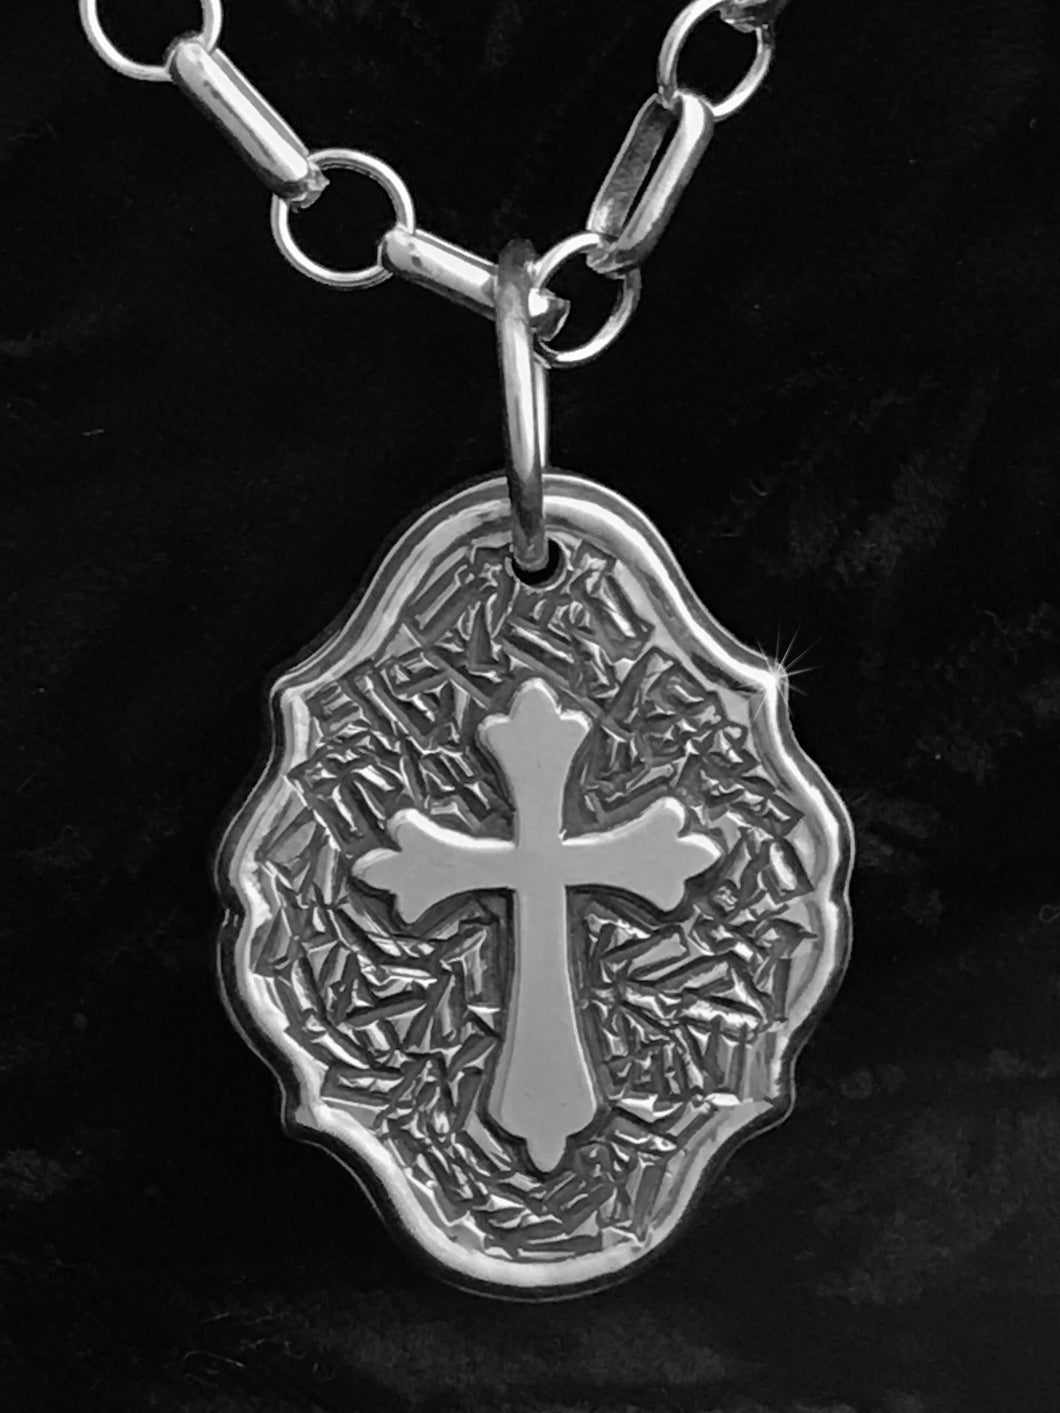 Original celtic cross pendant by Jim Brandvik (top view)